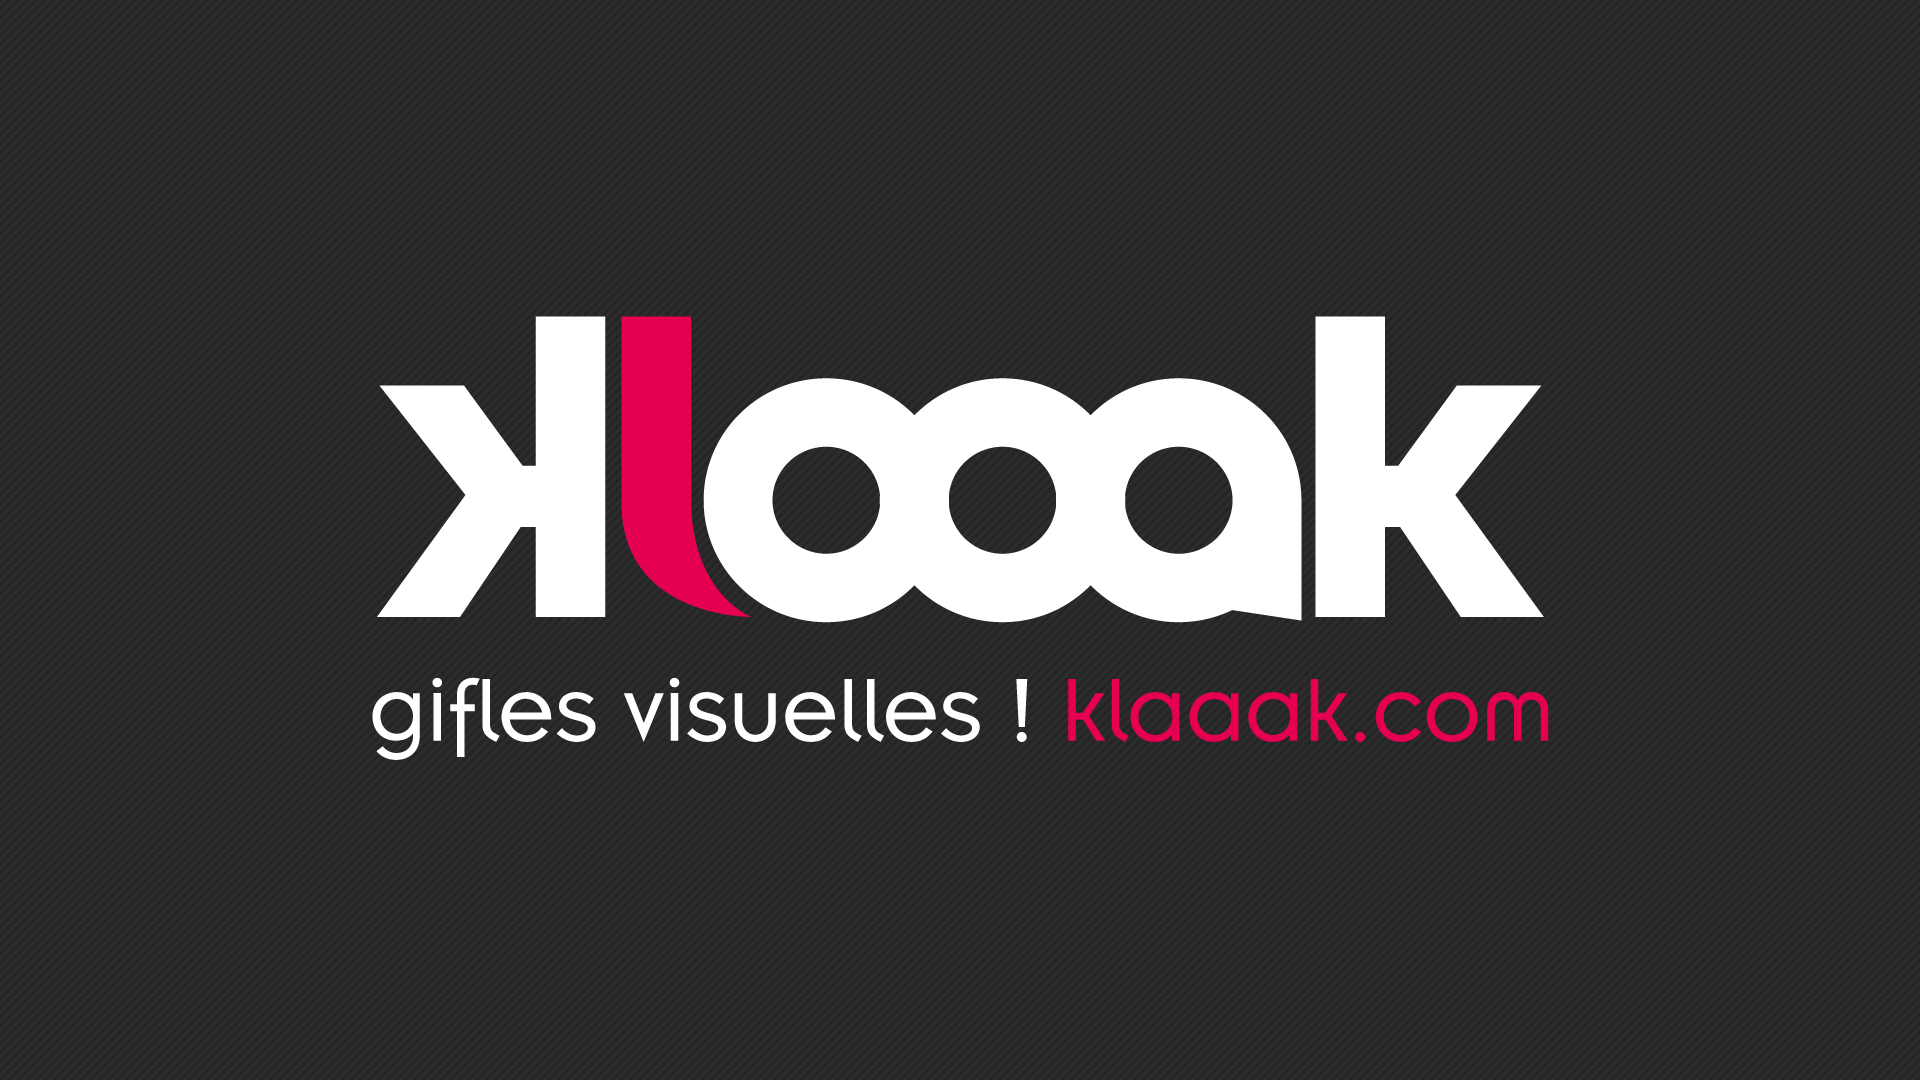 klaaak-creation-logo-identite-visuelle-communication-caconcept-alexis-cretin-graphiste